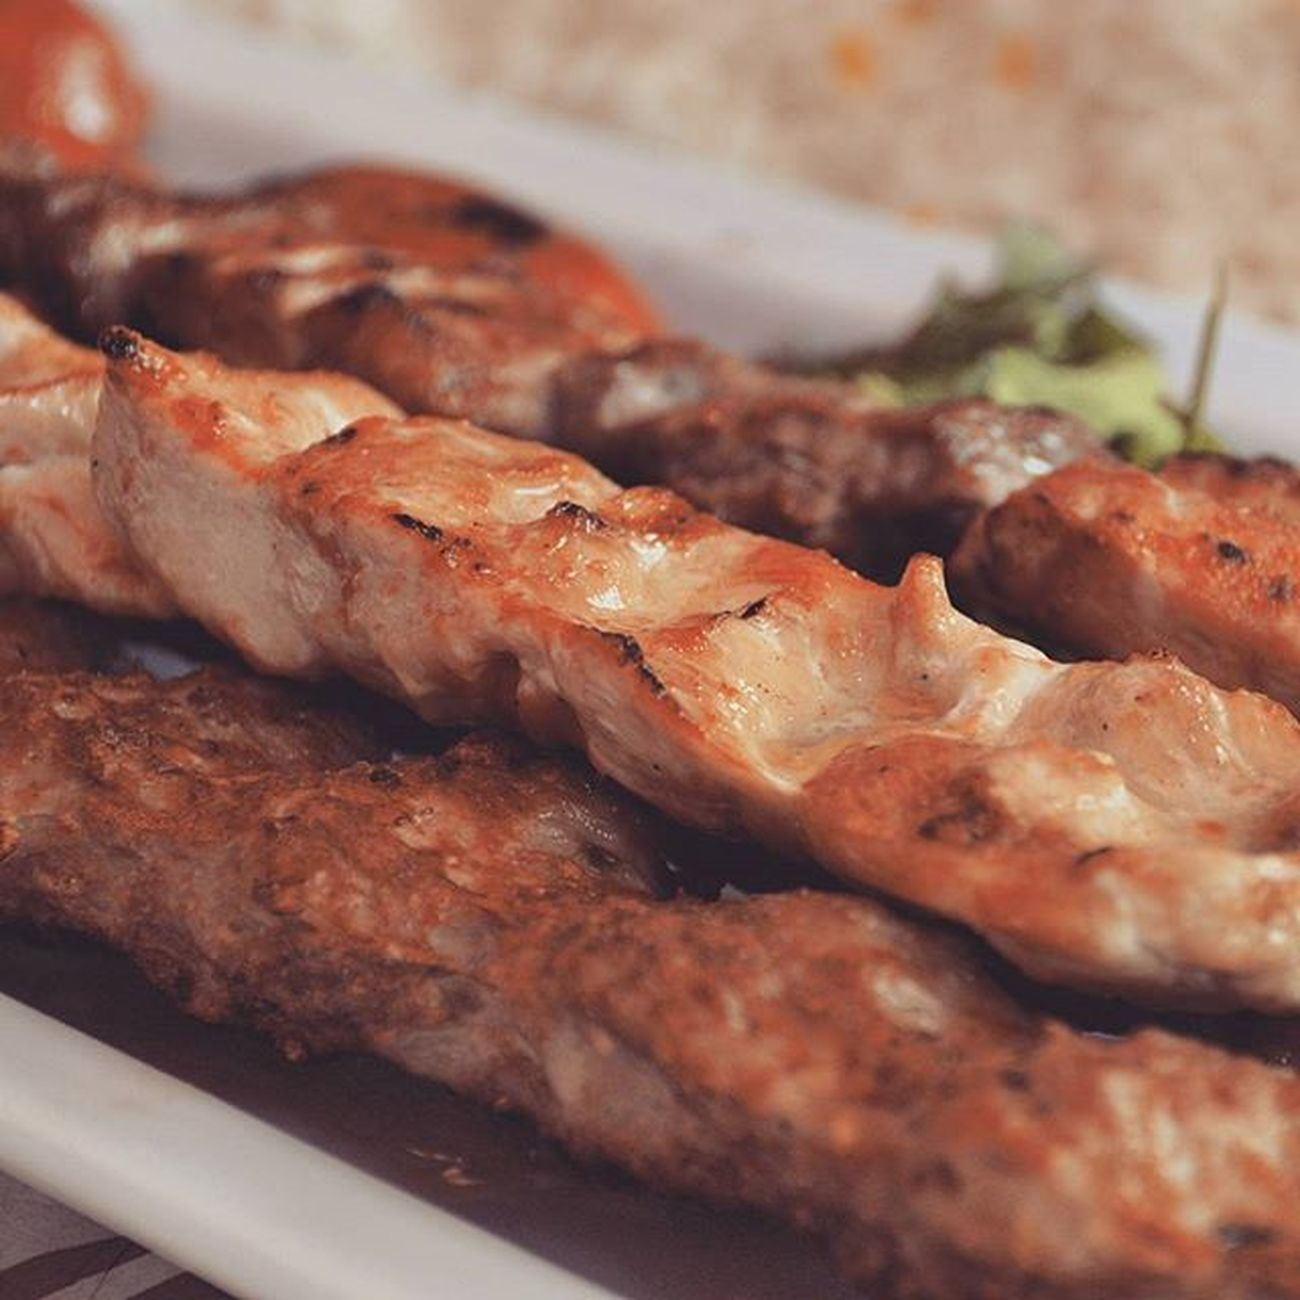 بفرمایید ! جوجه‌کباب Chicken Kebab ChickenKebab Food Foodporn Yum Instafood Yummy Instagood Photooftheday Dinner Lunch Tasty Delish Delicious Eating Foodpic Foodpics Eat Hungry Foodgasm Hot Foods PersianFood Joojehkebab